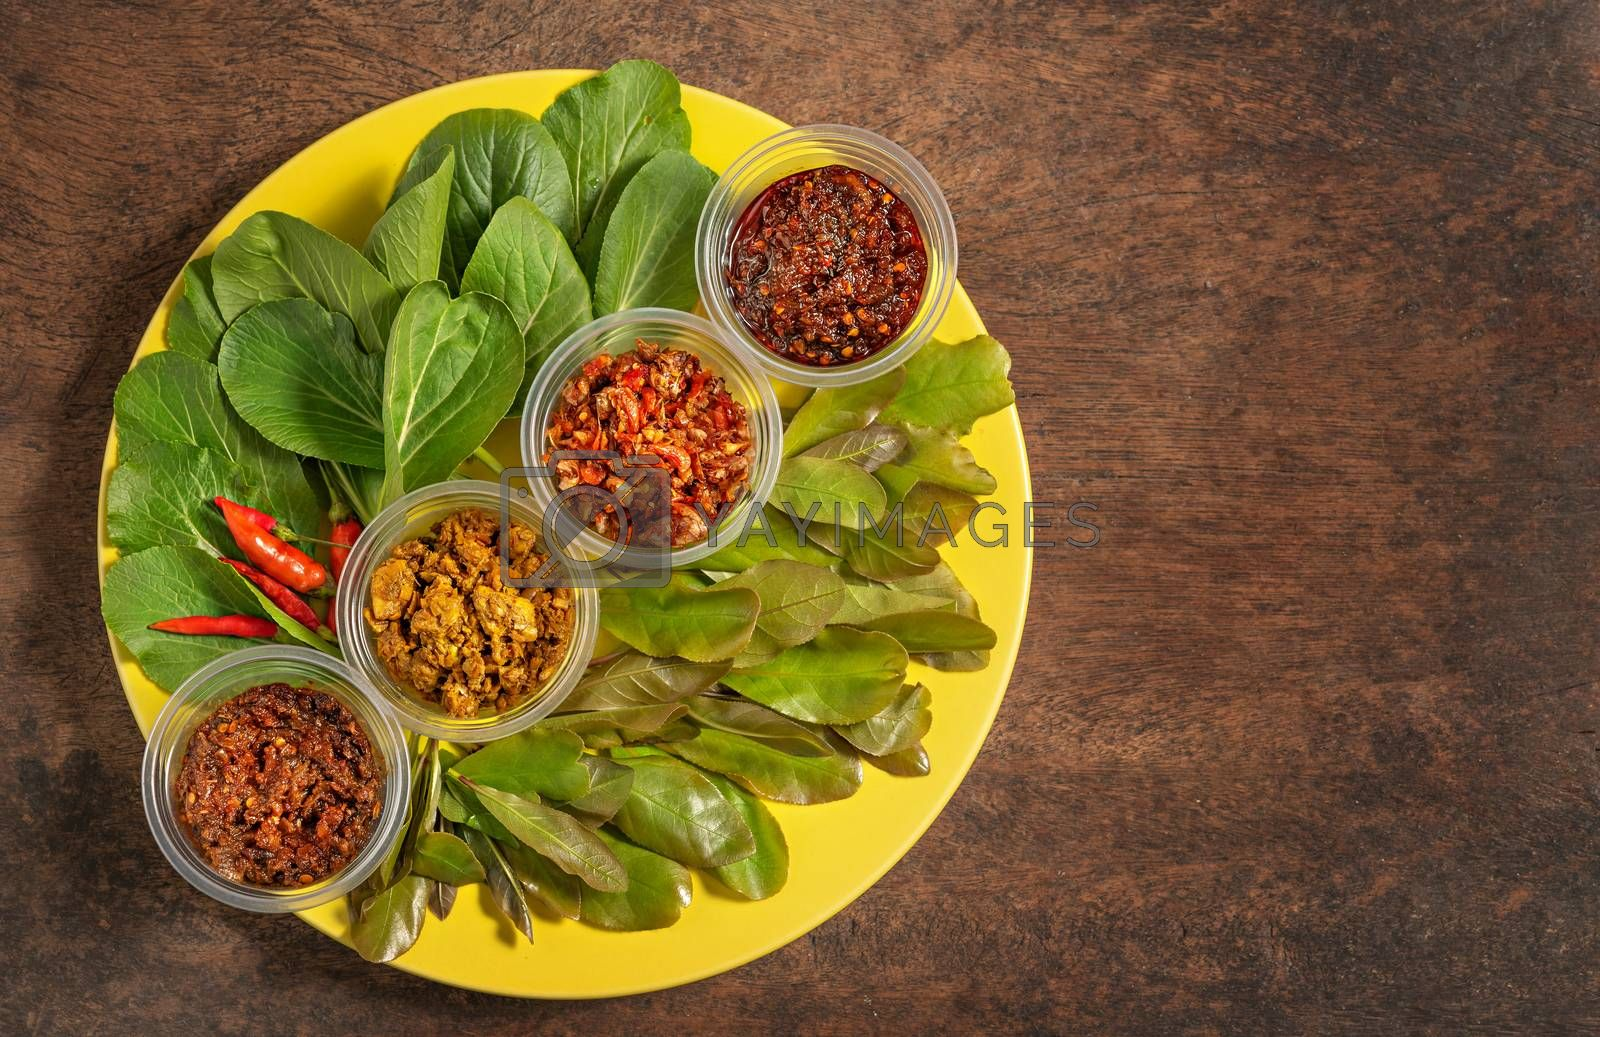 thai style chili paste served with fresh vegetables on yellow plate over wooden background